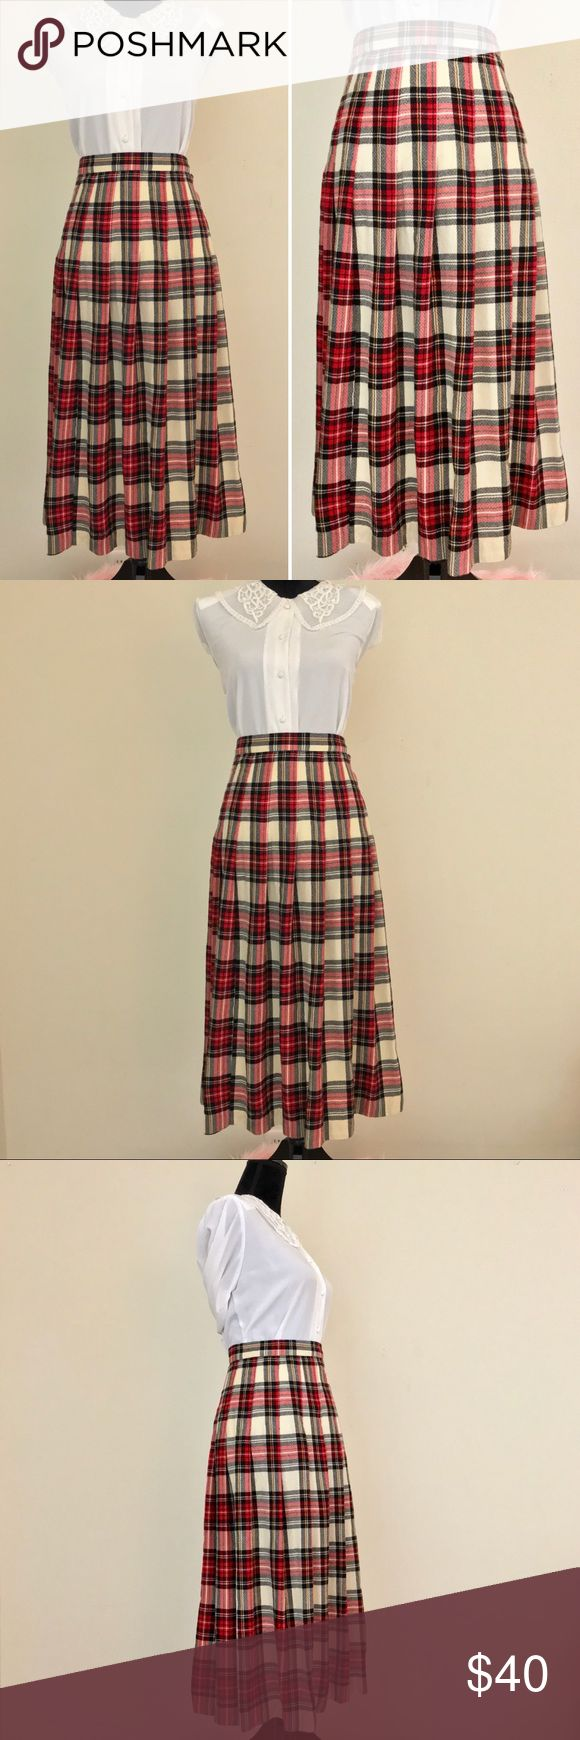 Vintage 70s Talbots Red Pleated Plaid Tartan Skirt Vintage 1970s Talbots High-Waisted Red Wool Pleated Plaid Tartan Midi Skirt. Look just like Audrey Horne in Twin Peaks in this classic skirt! Just add a collared top, cardigan & some saddle shoes & you'll be retro in no time. Body flattering fit & flare A-line cut. Material is a soft wool with an all over red, black & cream with yellow accents on a tartan plaid print. Has one tiny hole at a pleat that isn't very noticeable. Great 8/10…